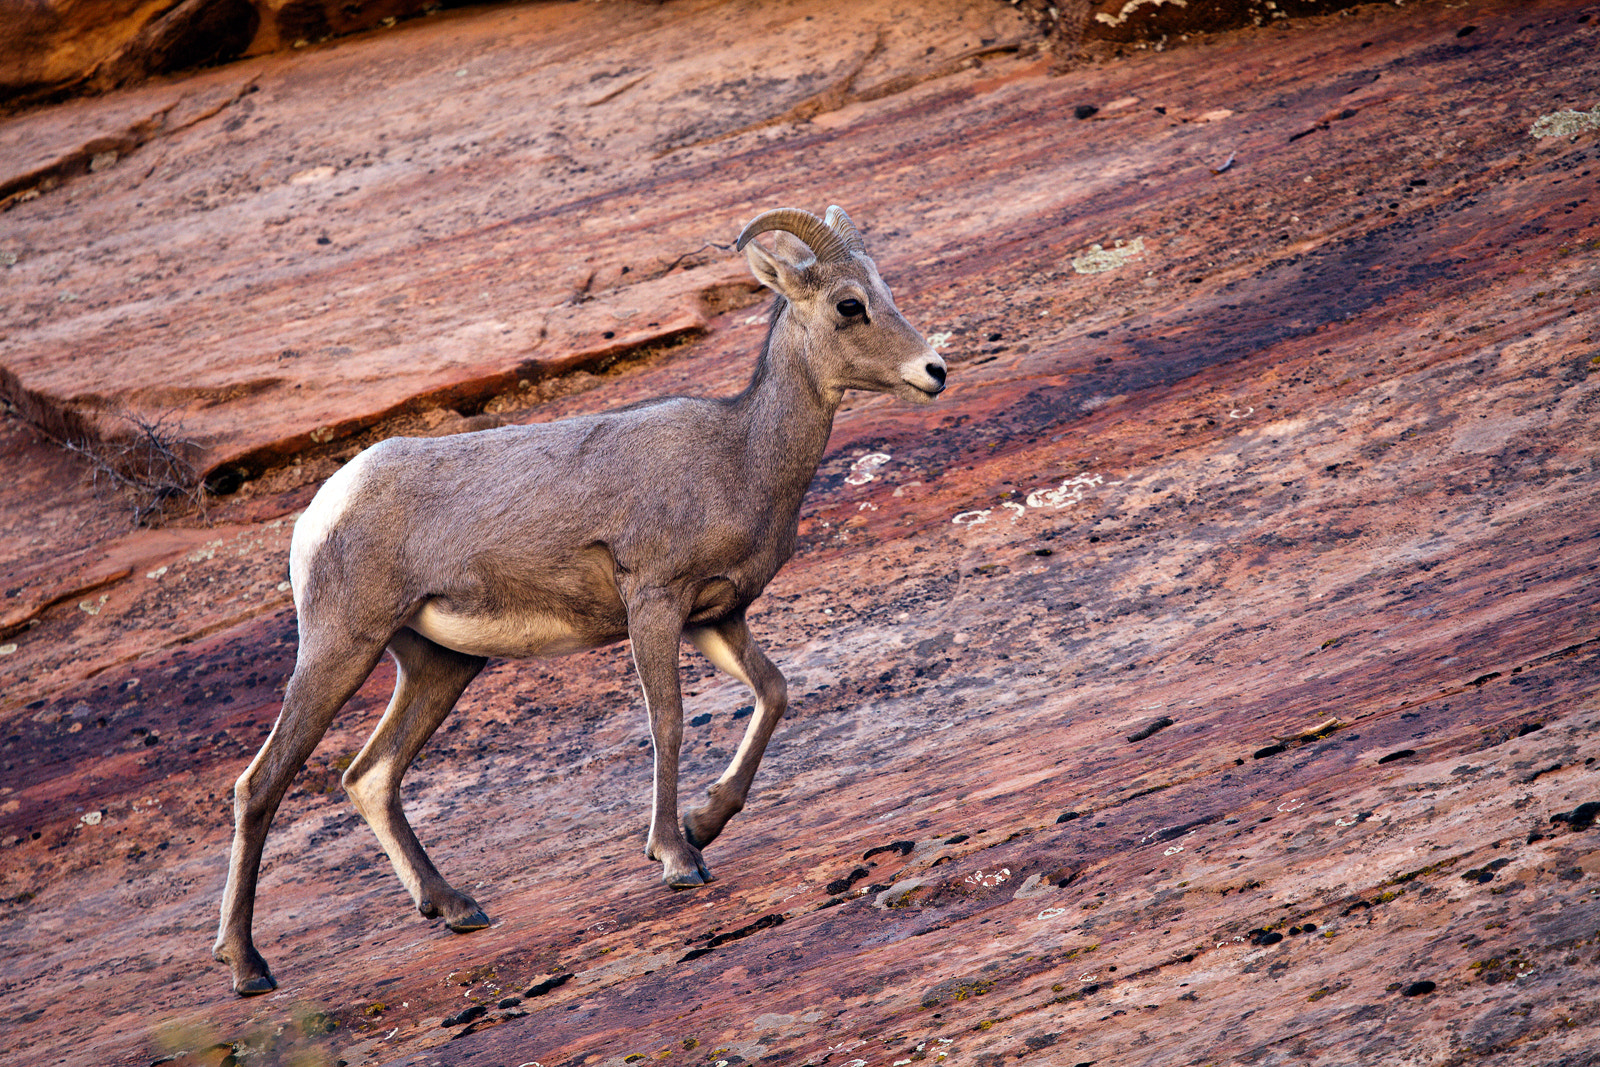 Photograph Eastside Ewe, Zion NP by Greg Clure on 500px